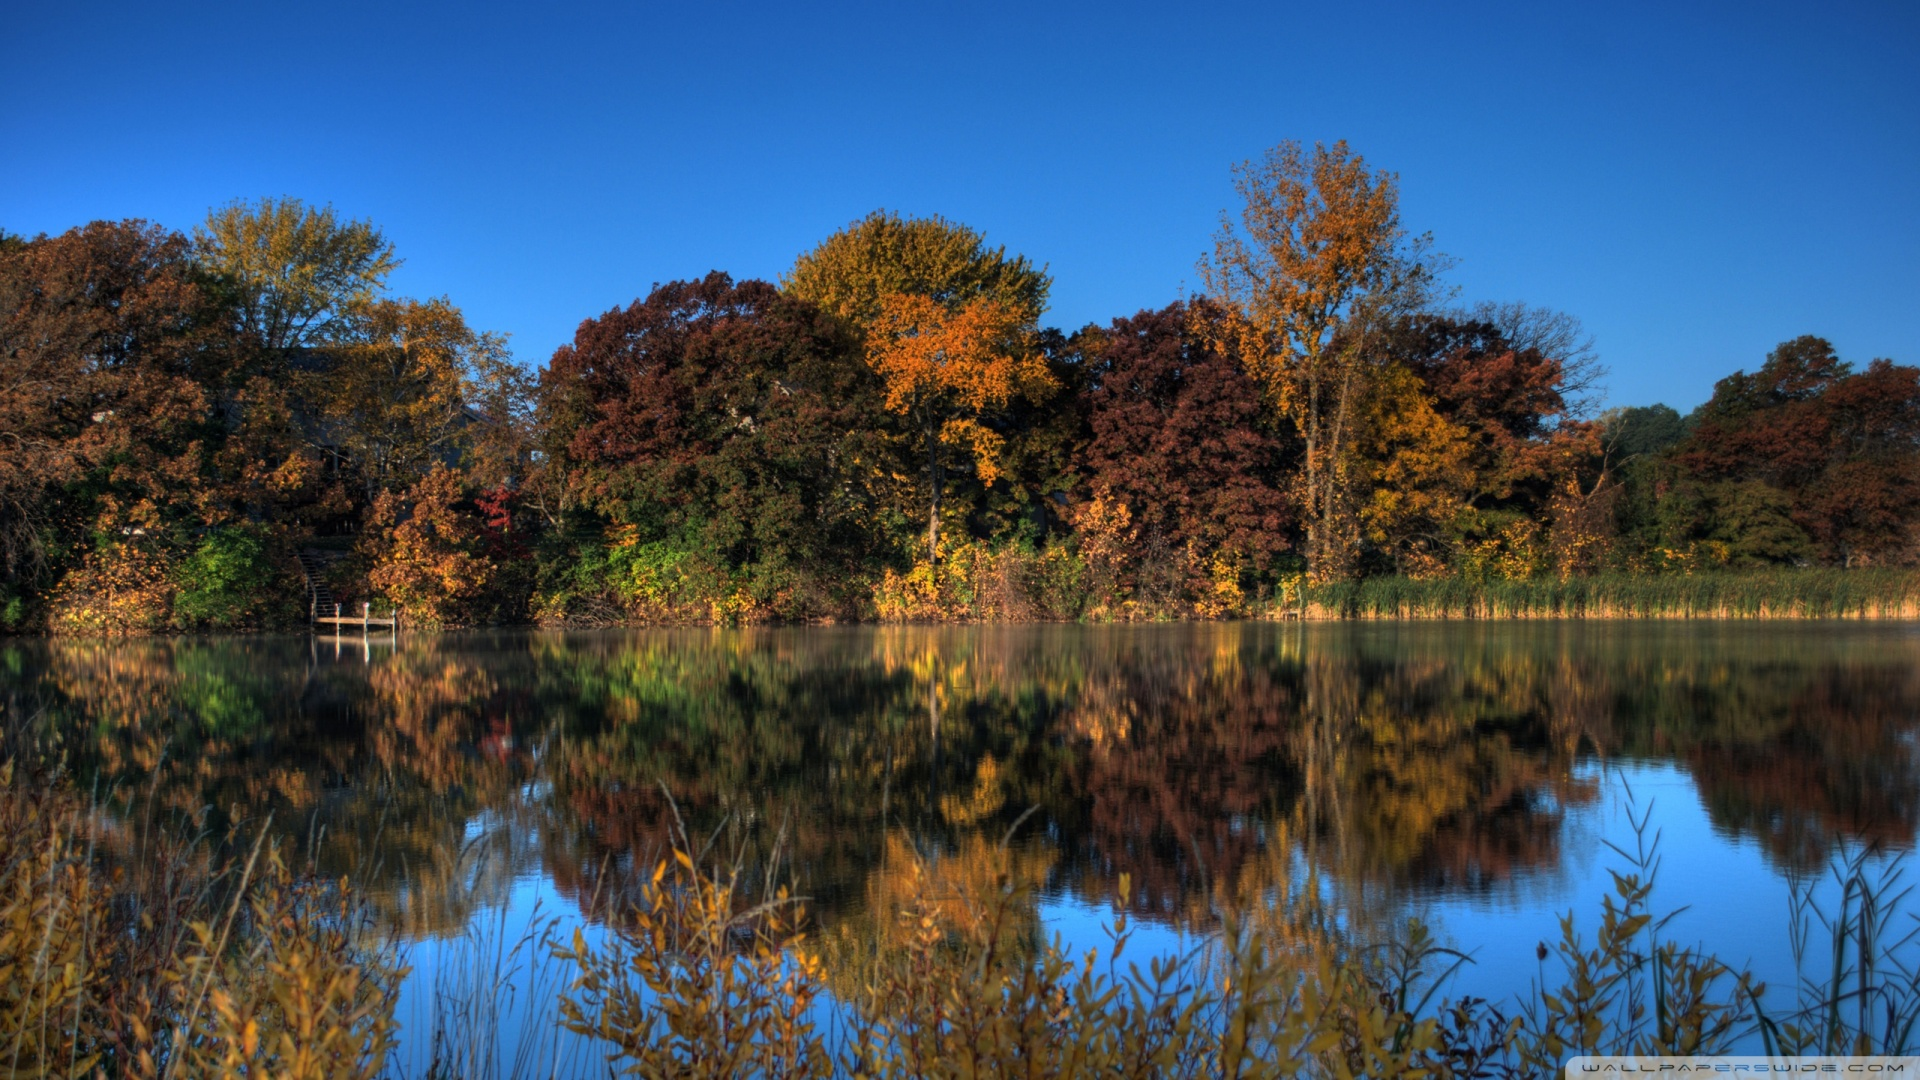 Free Fall Wallpaper For Ipad 2 Autumn Pond Eagan Minnesota 4k Hd Desktop Wallpaper For